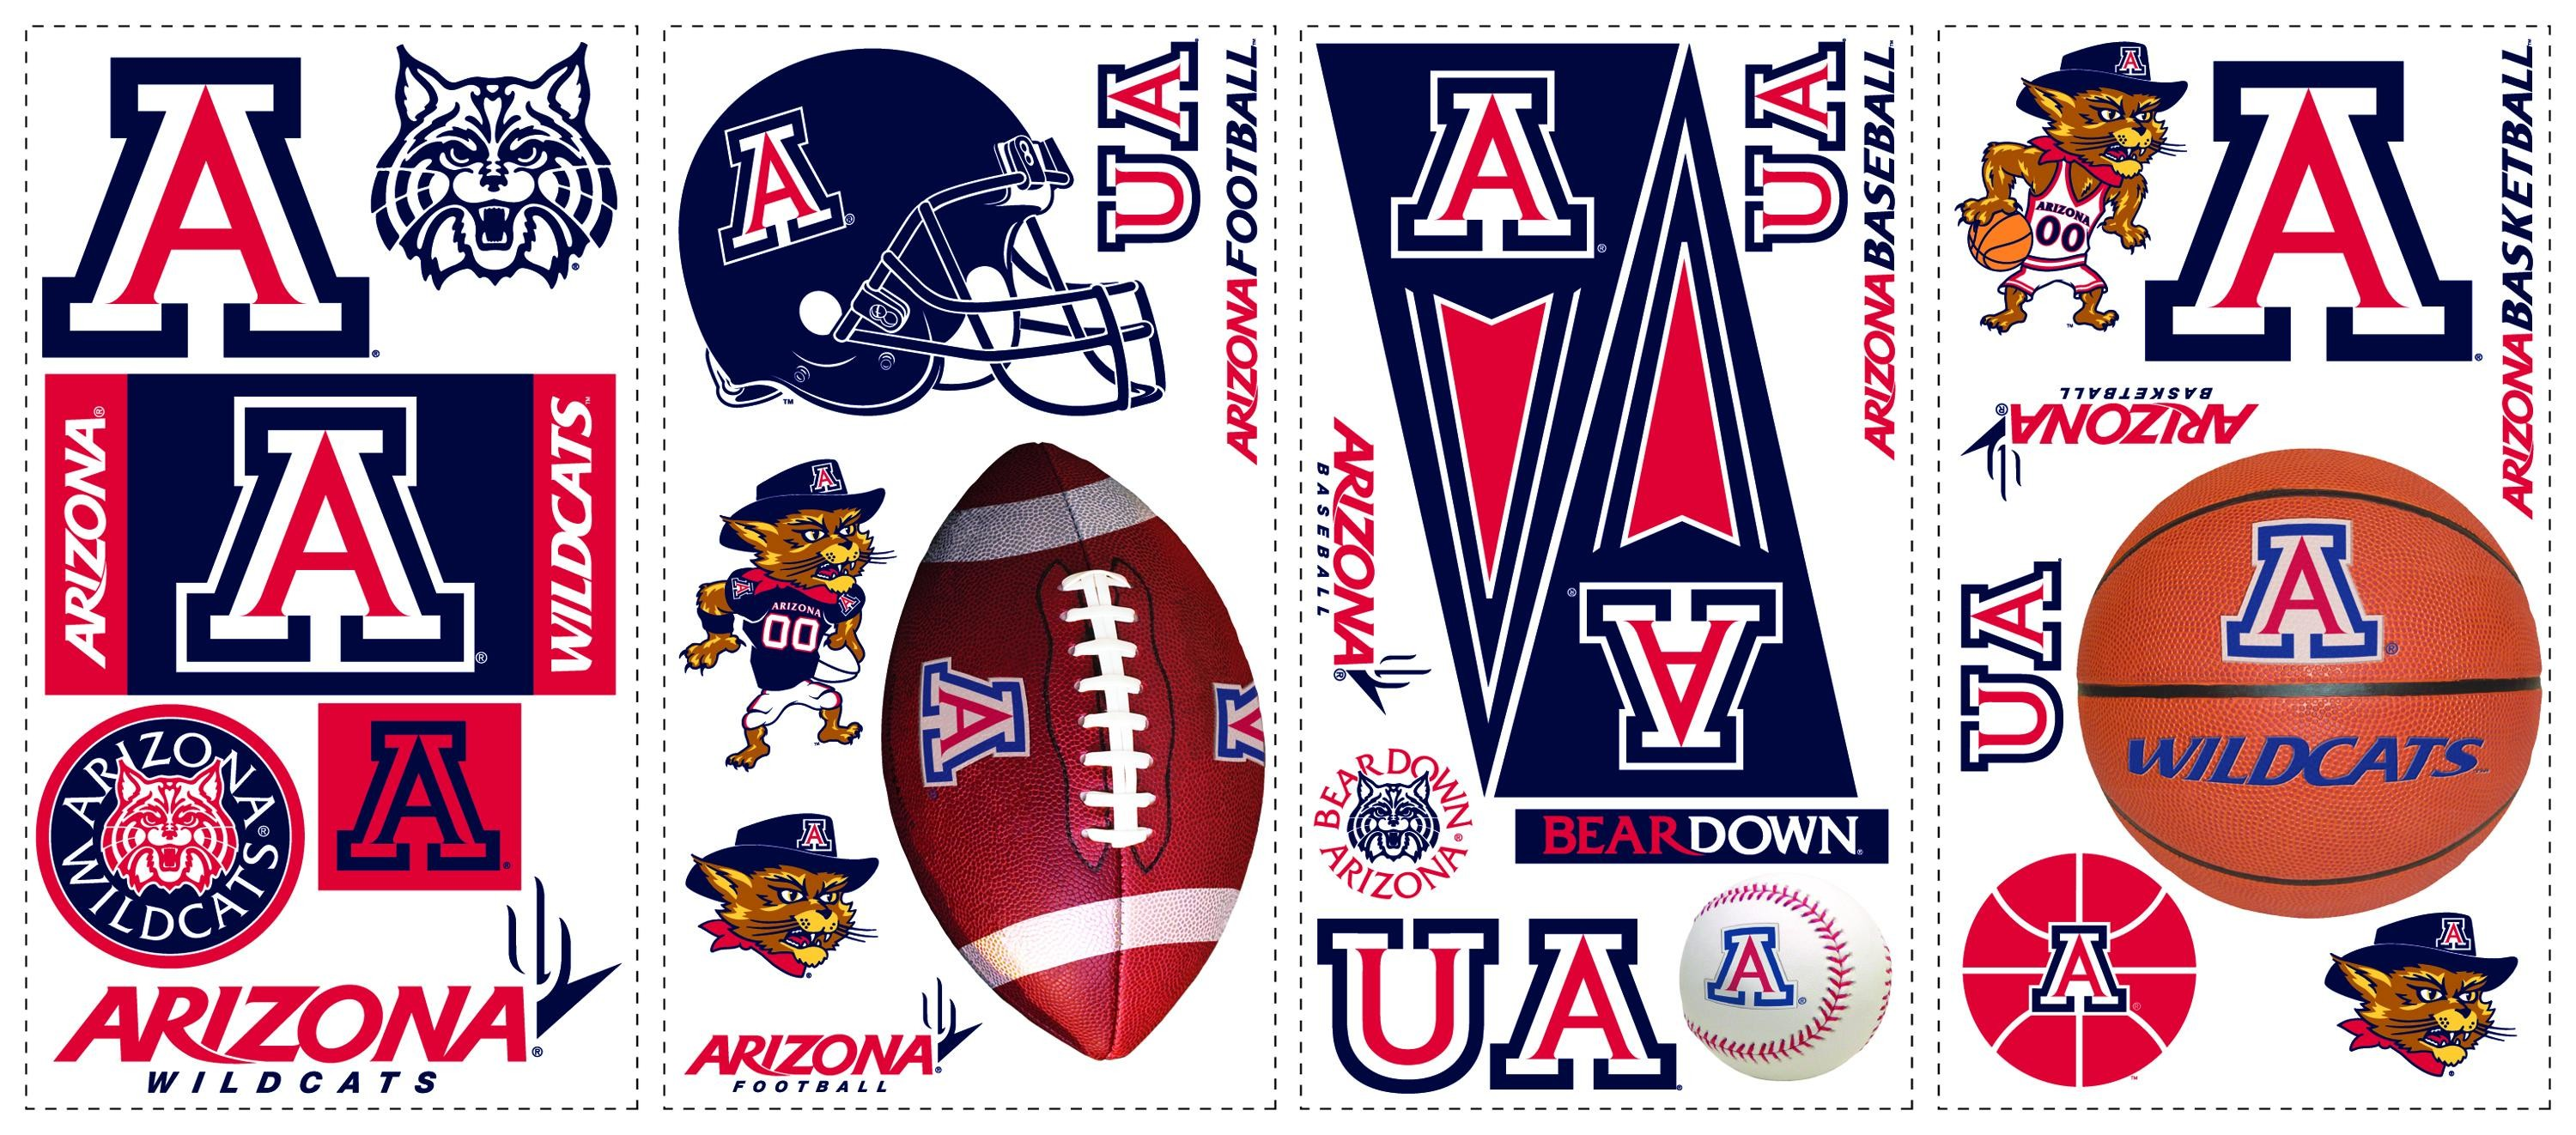 3000x1322 York Wallpaper Arizona Wildcats Wall Decals Search Results